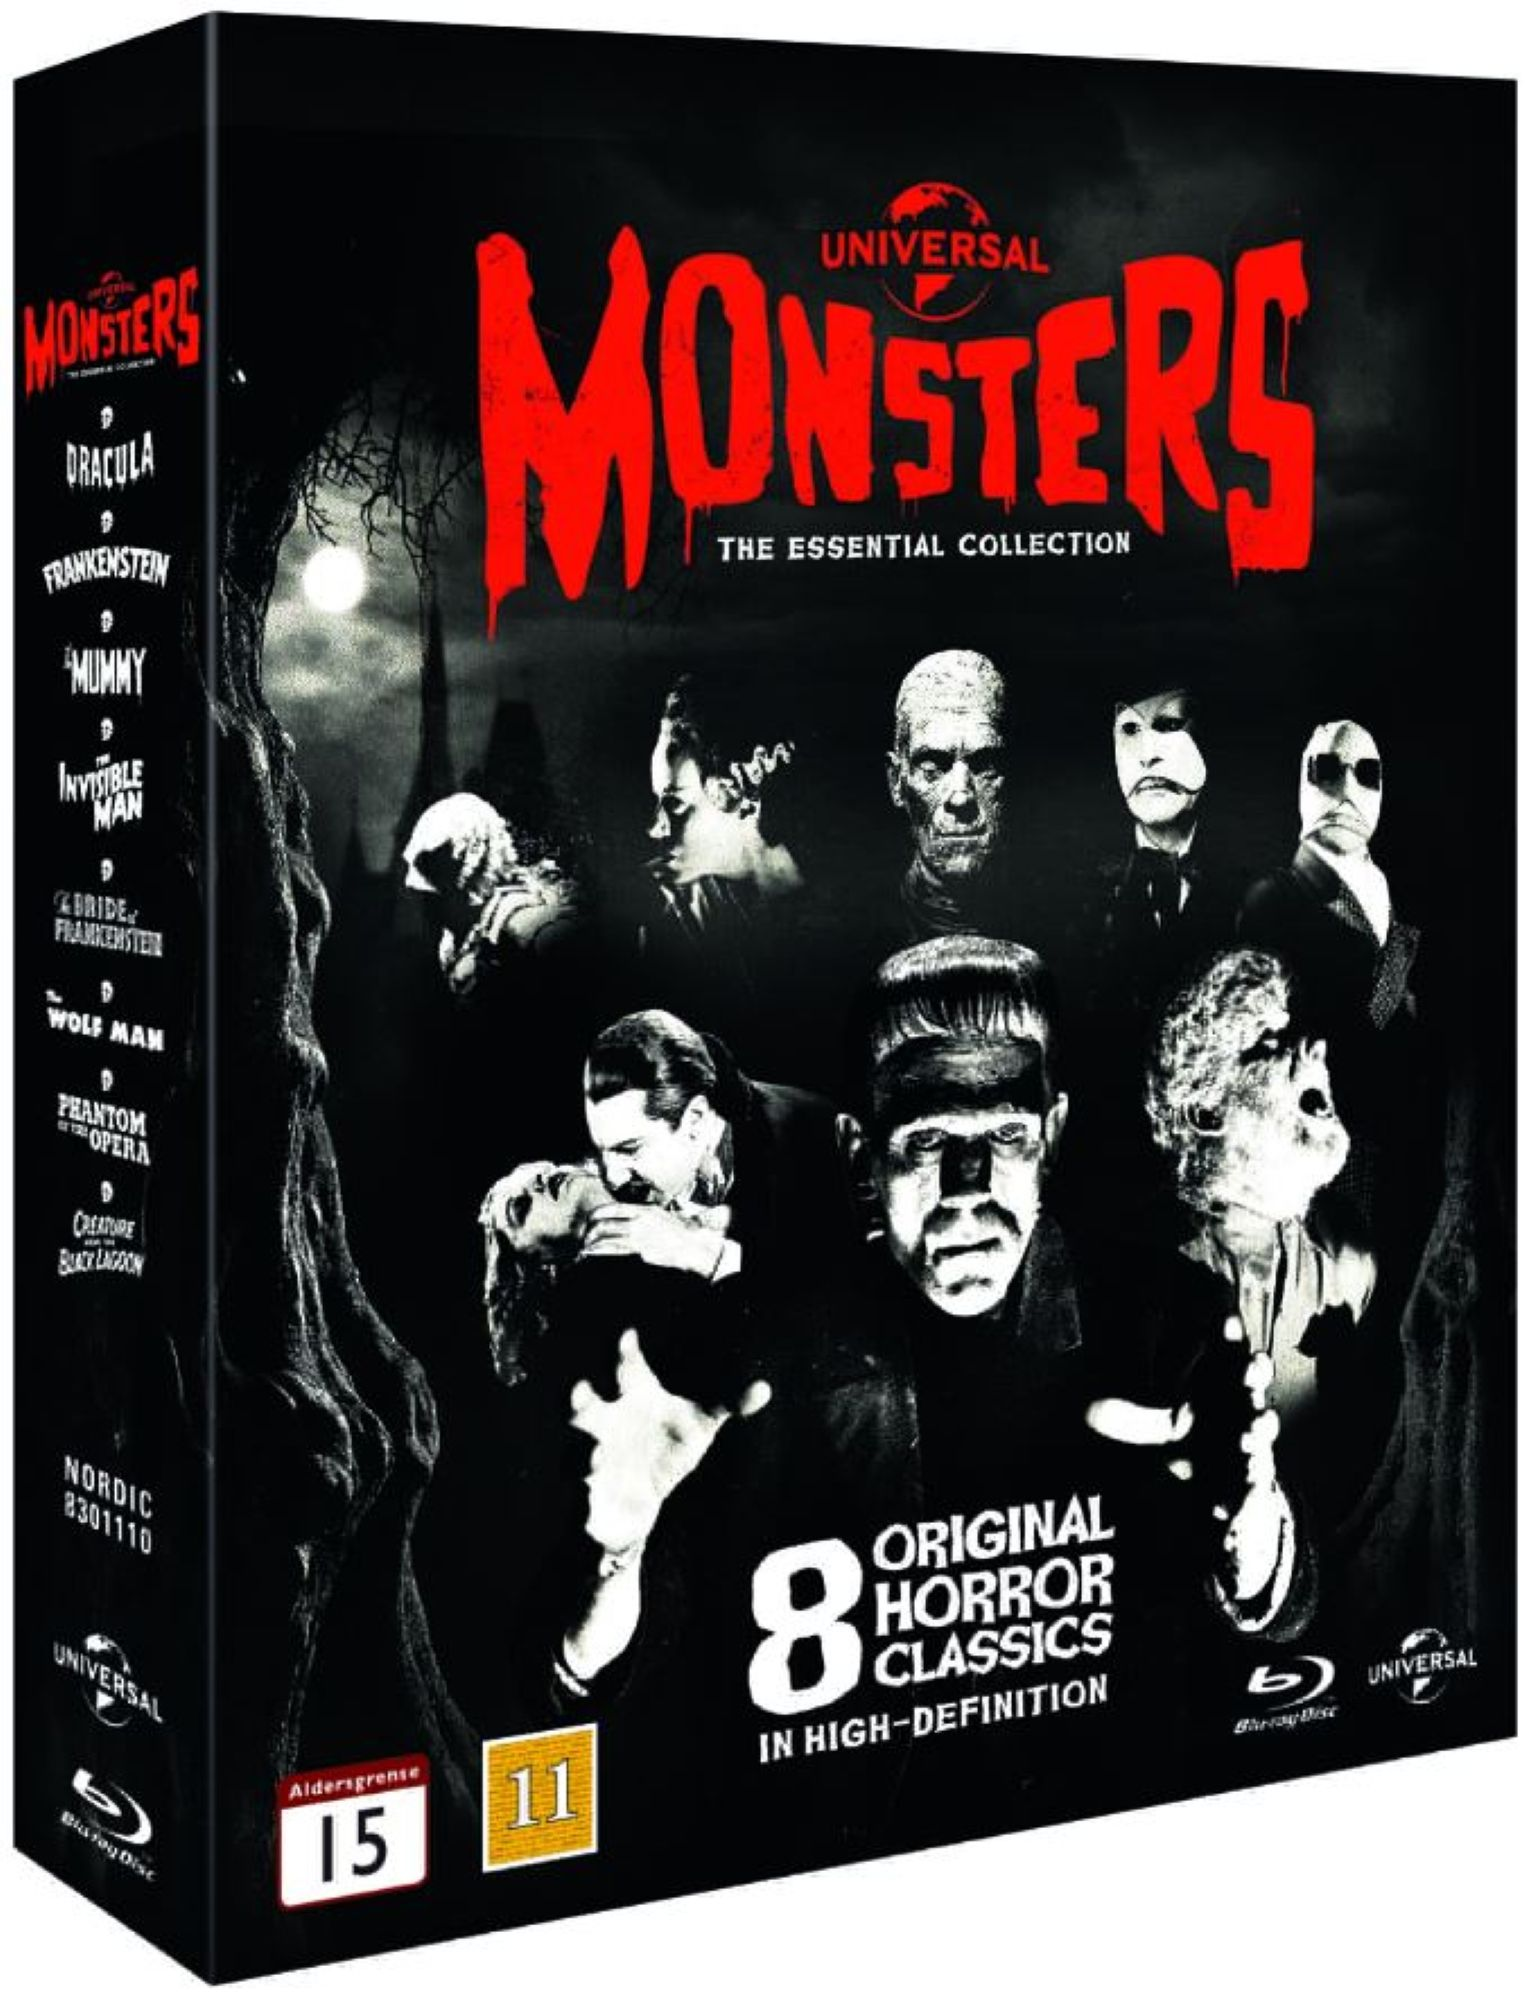 Universal Monsters - The Essential Collection (Blu-ray) (8 disc)